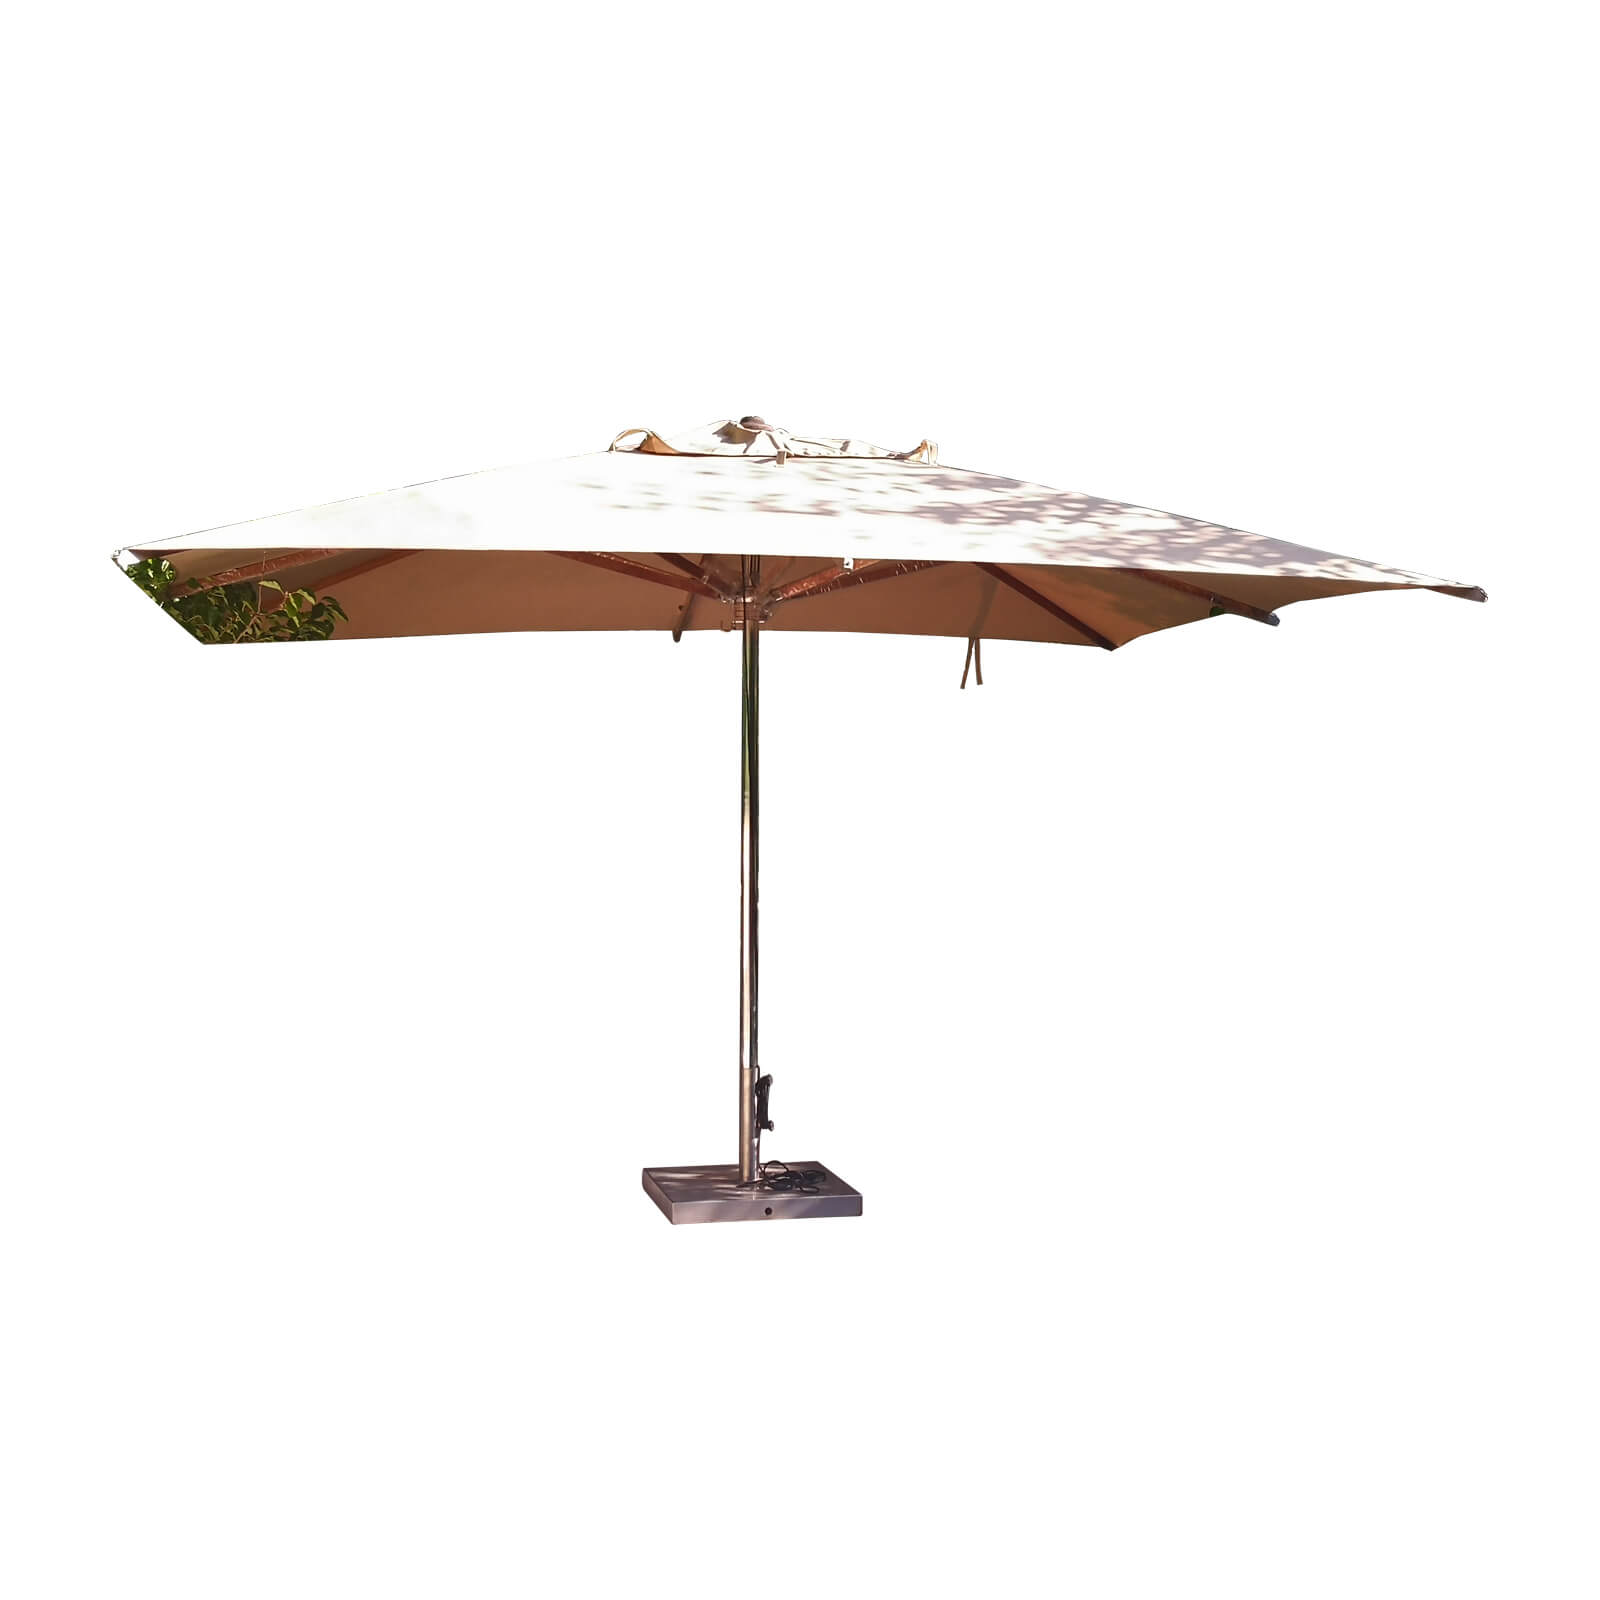 Royal Botania Shady Teak Outdoor Umbrella